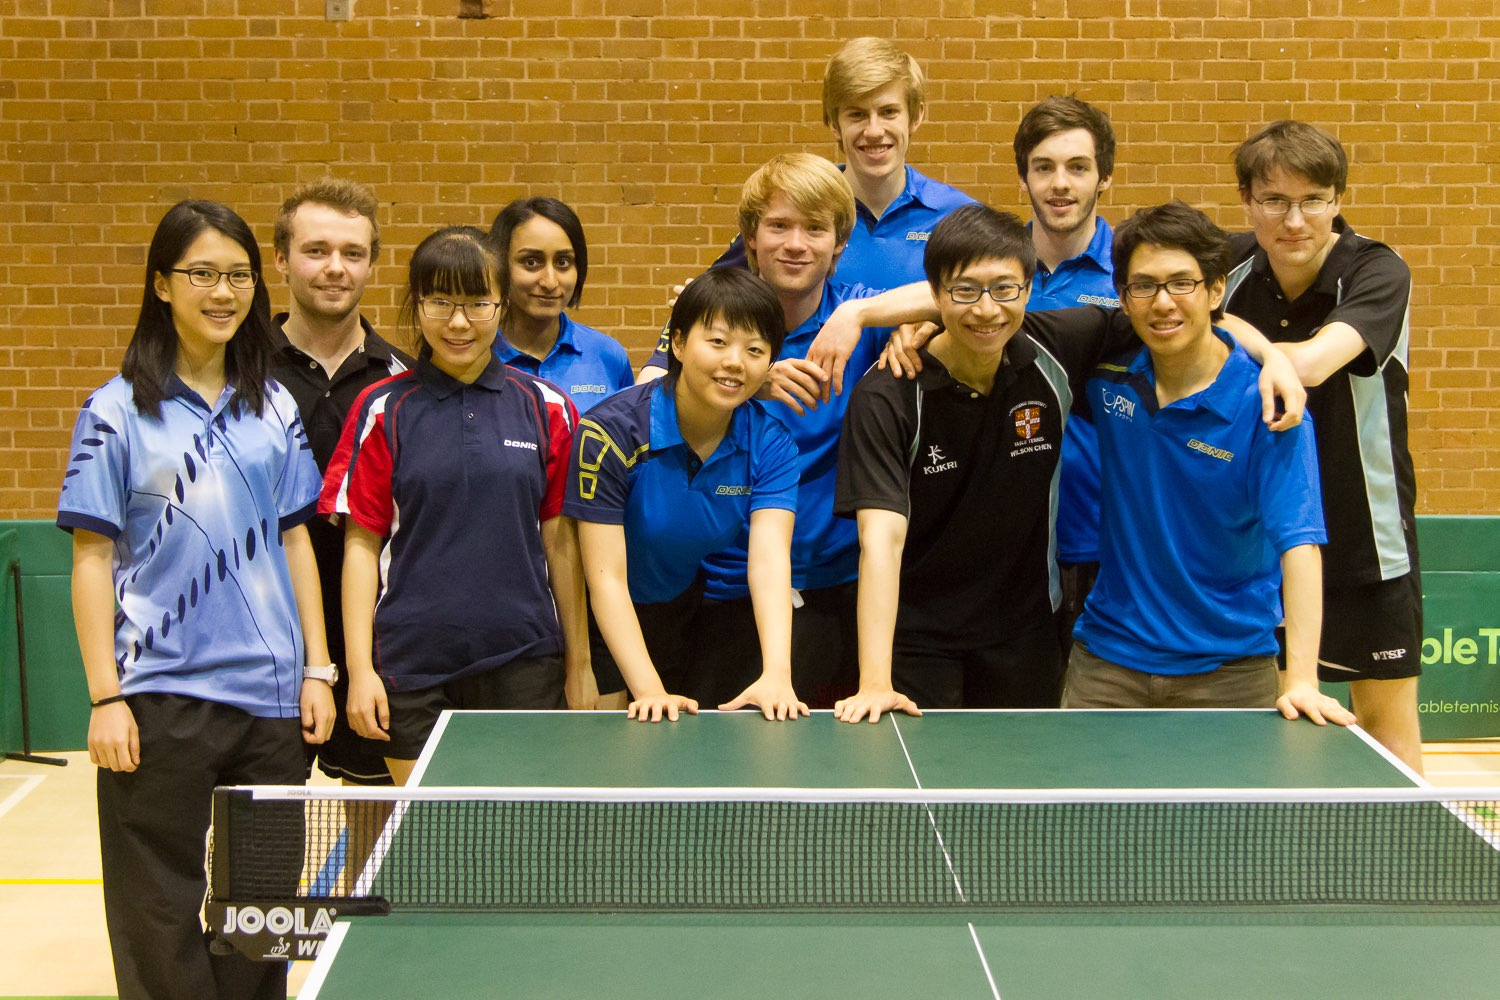 Some of our team members at the BUCS Individual Championships